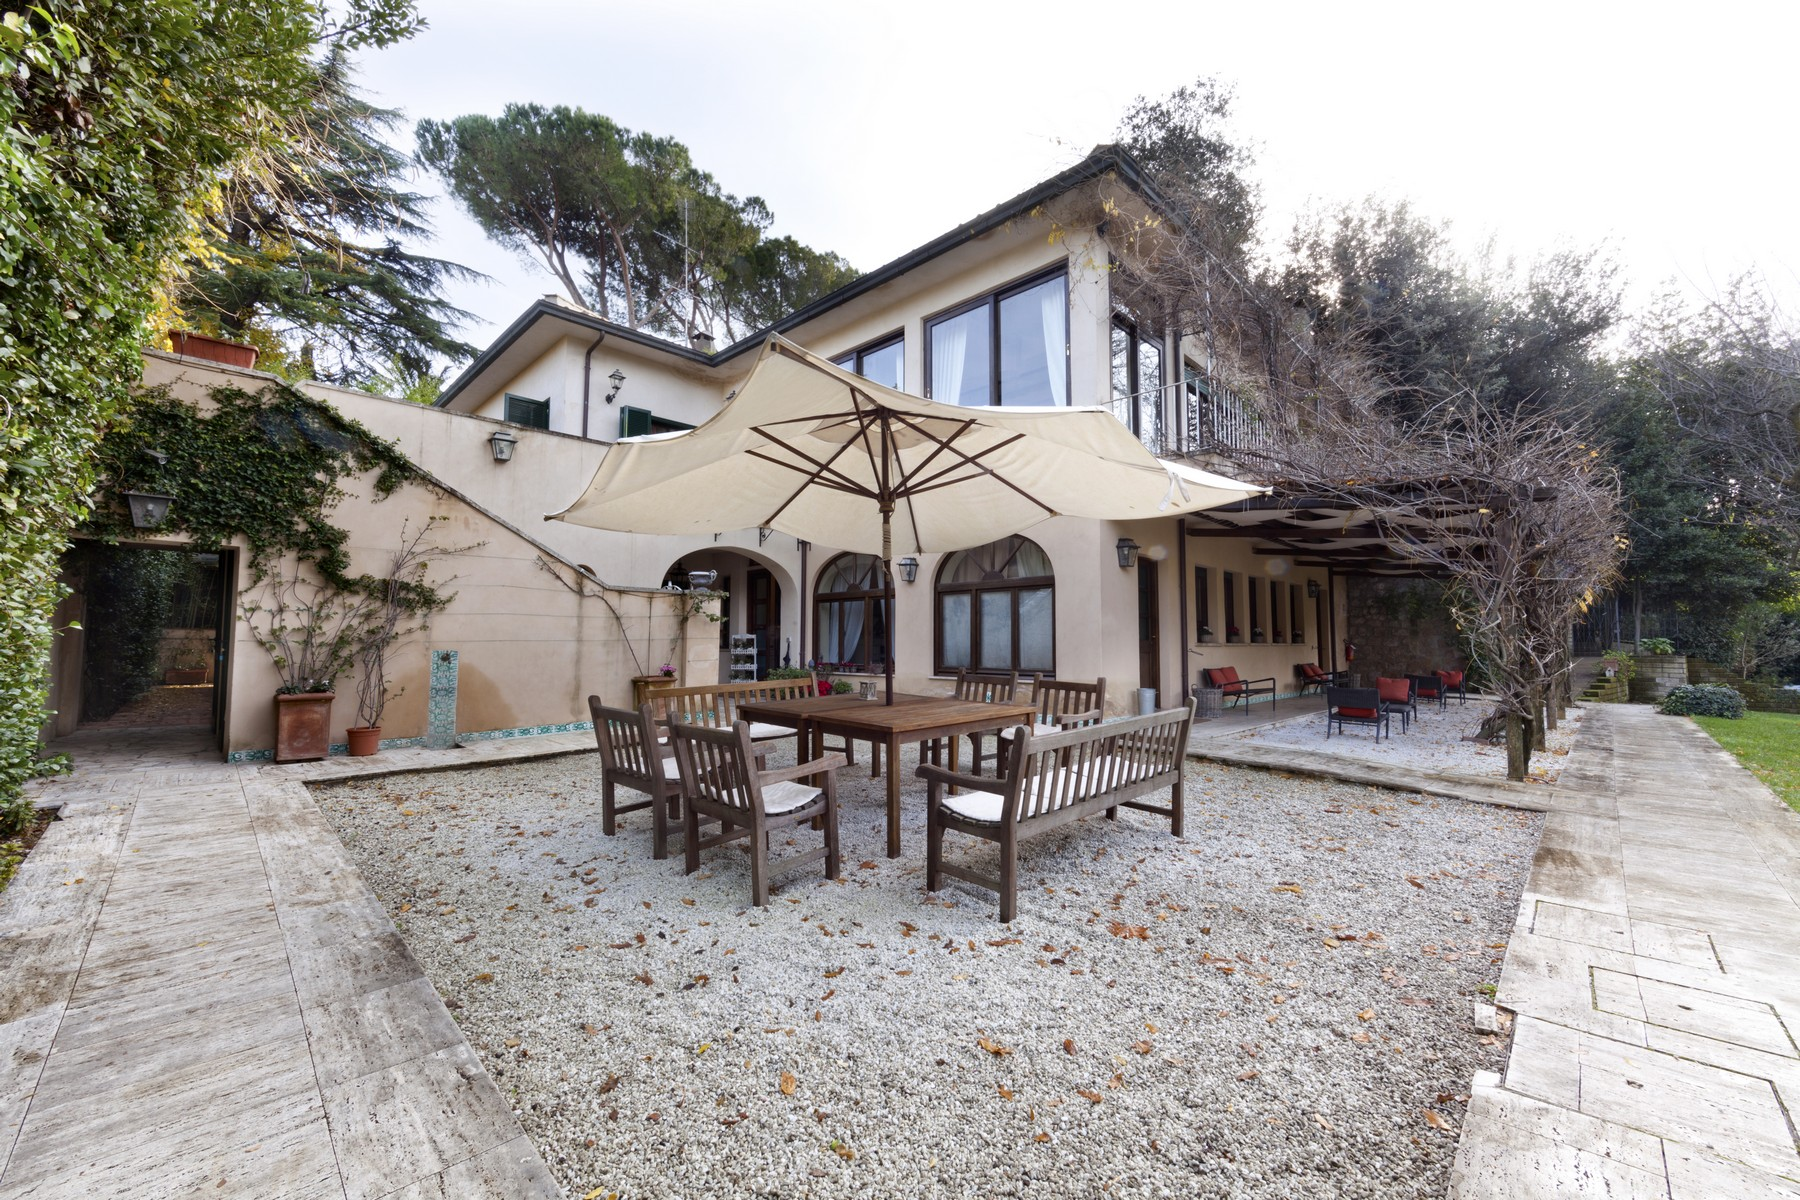 Apartment for Rent at Magnificent property whitin a Villa a few steps from St. Peter's Via delle Fornaci Rome, 00165 Italy